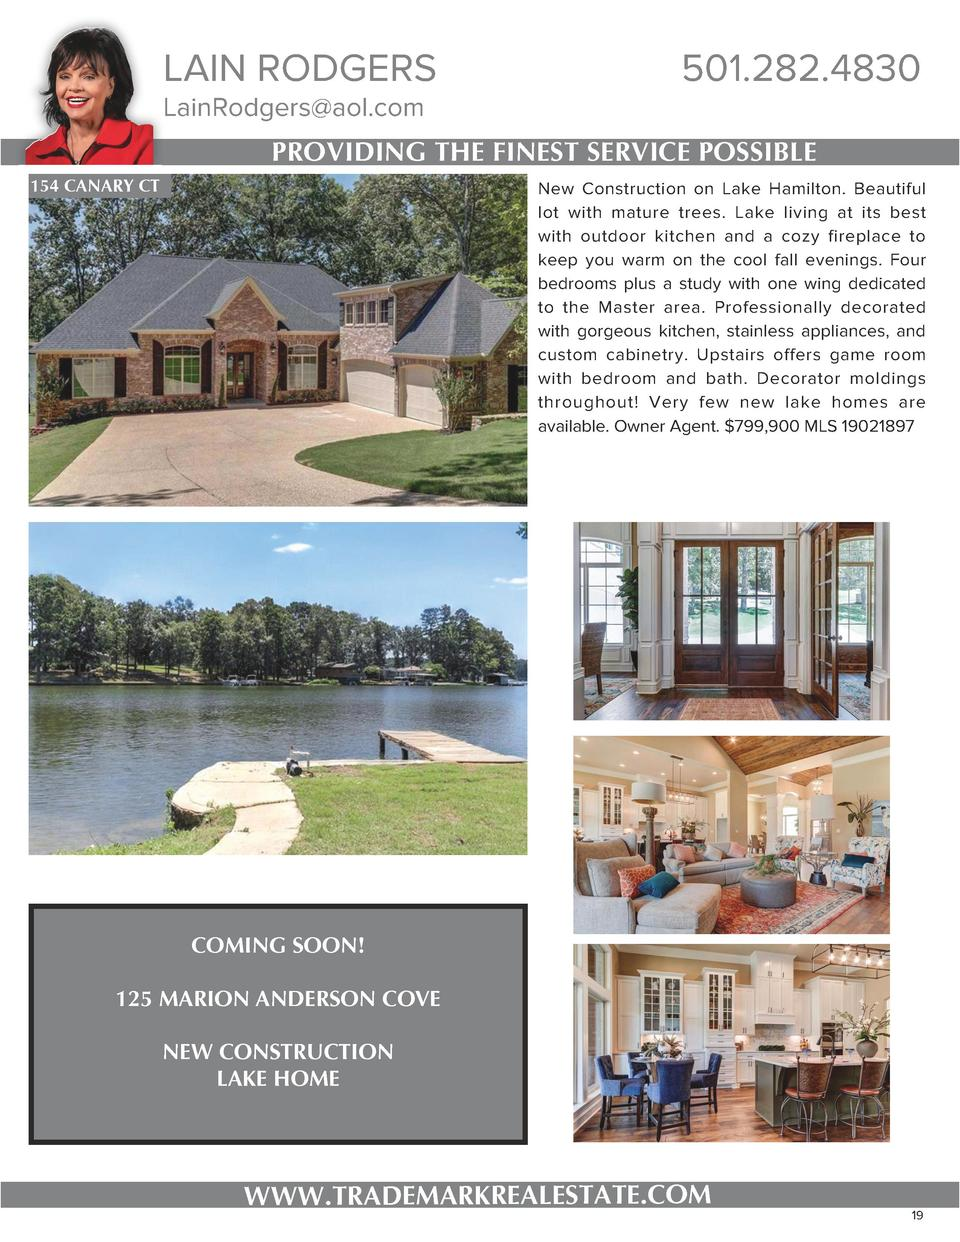 LAIN RODGERS LainRodgers aol.com  501.282.4830  PROVIDING THE FINEST SERVICE POSSIBLE 154 CANARY CT  New Construction on L...